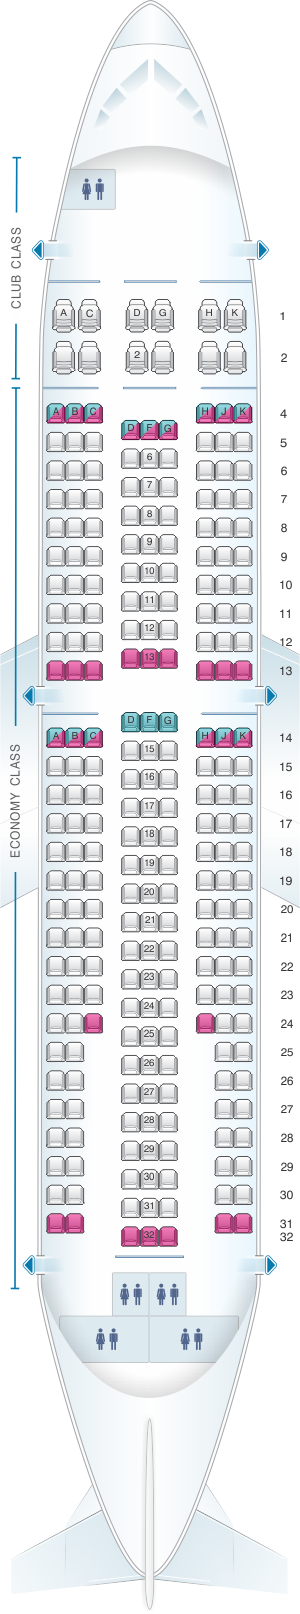 Seat map for Air Transat Airbus A310 300